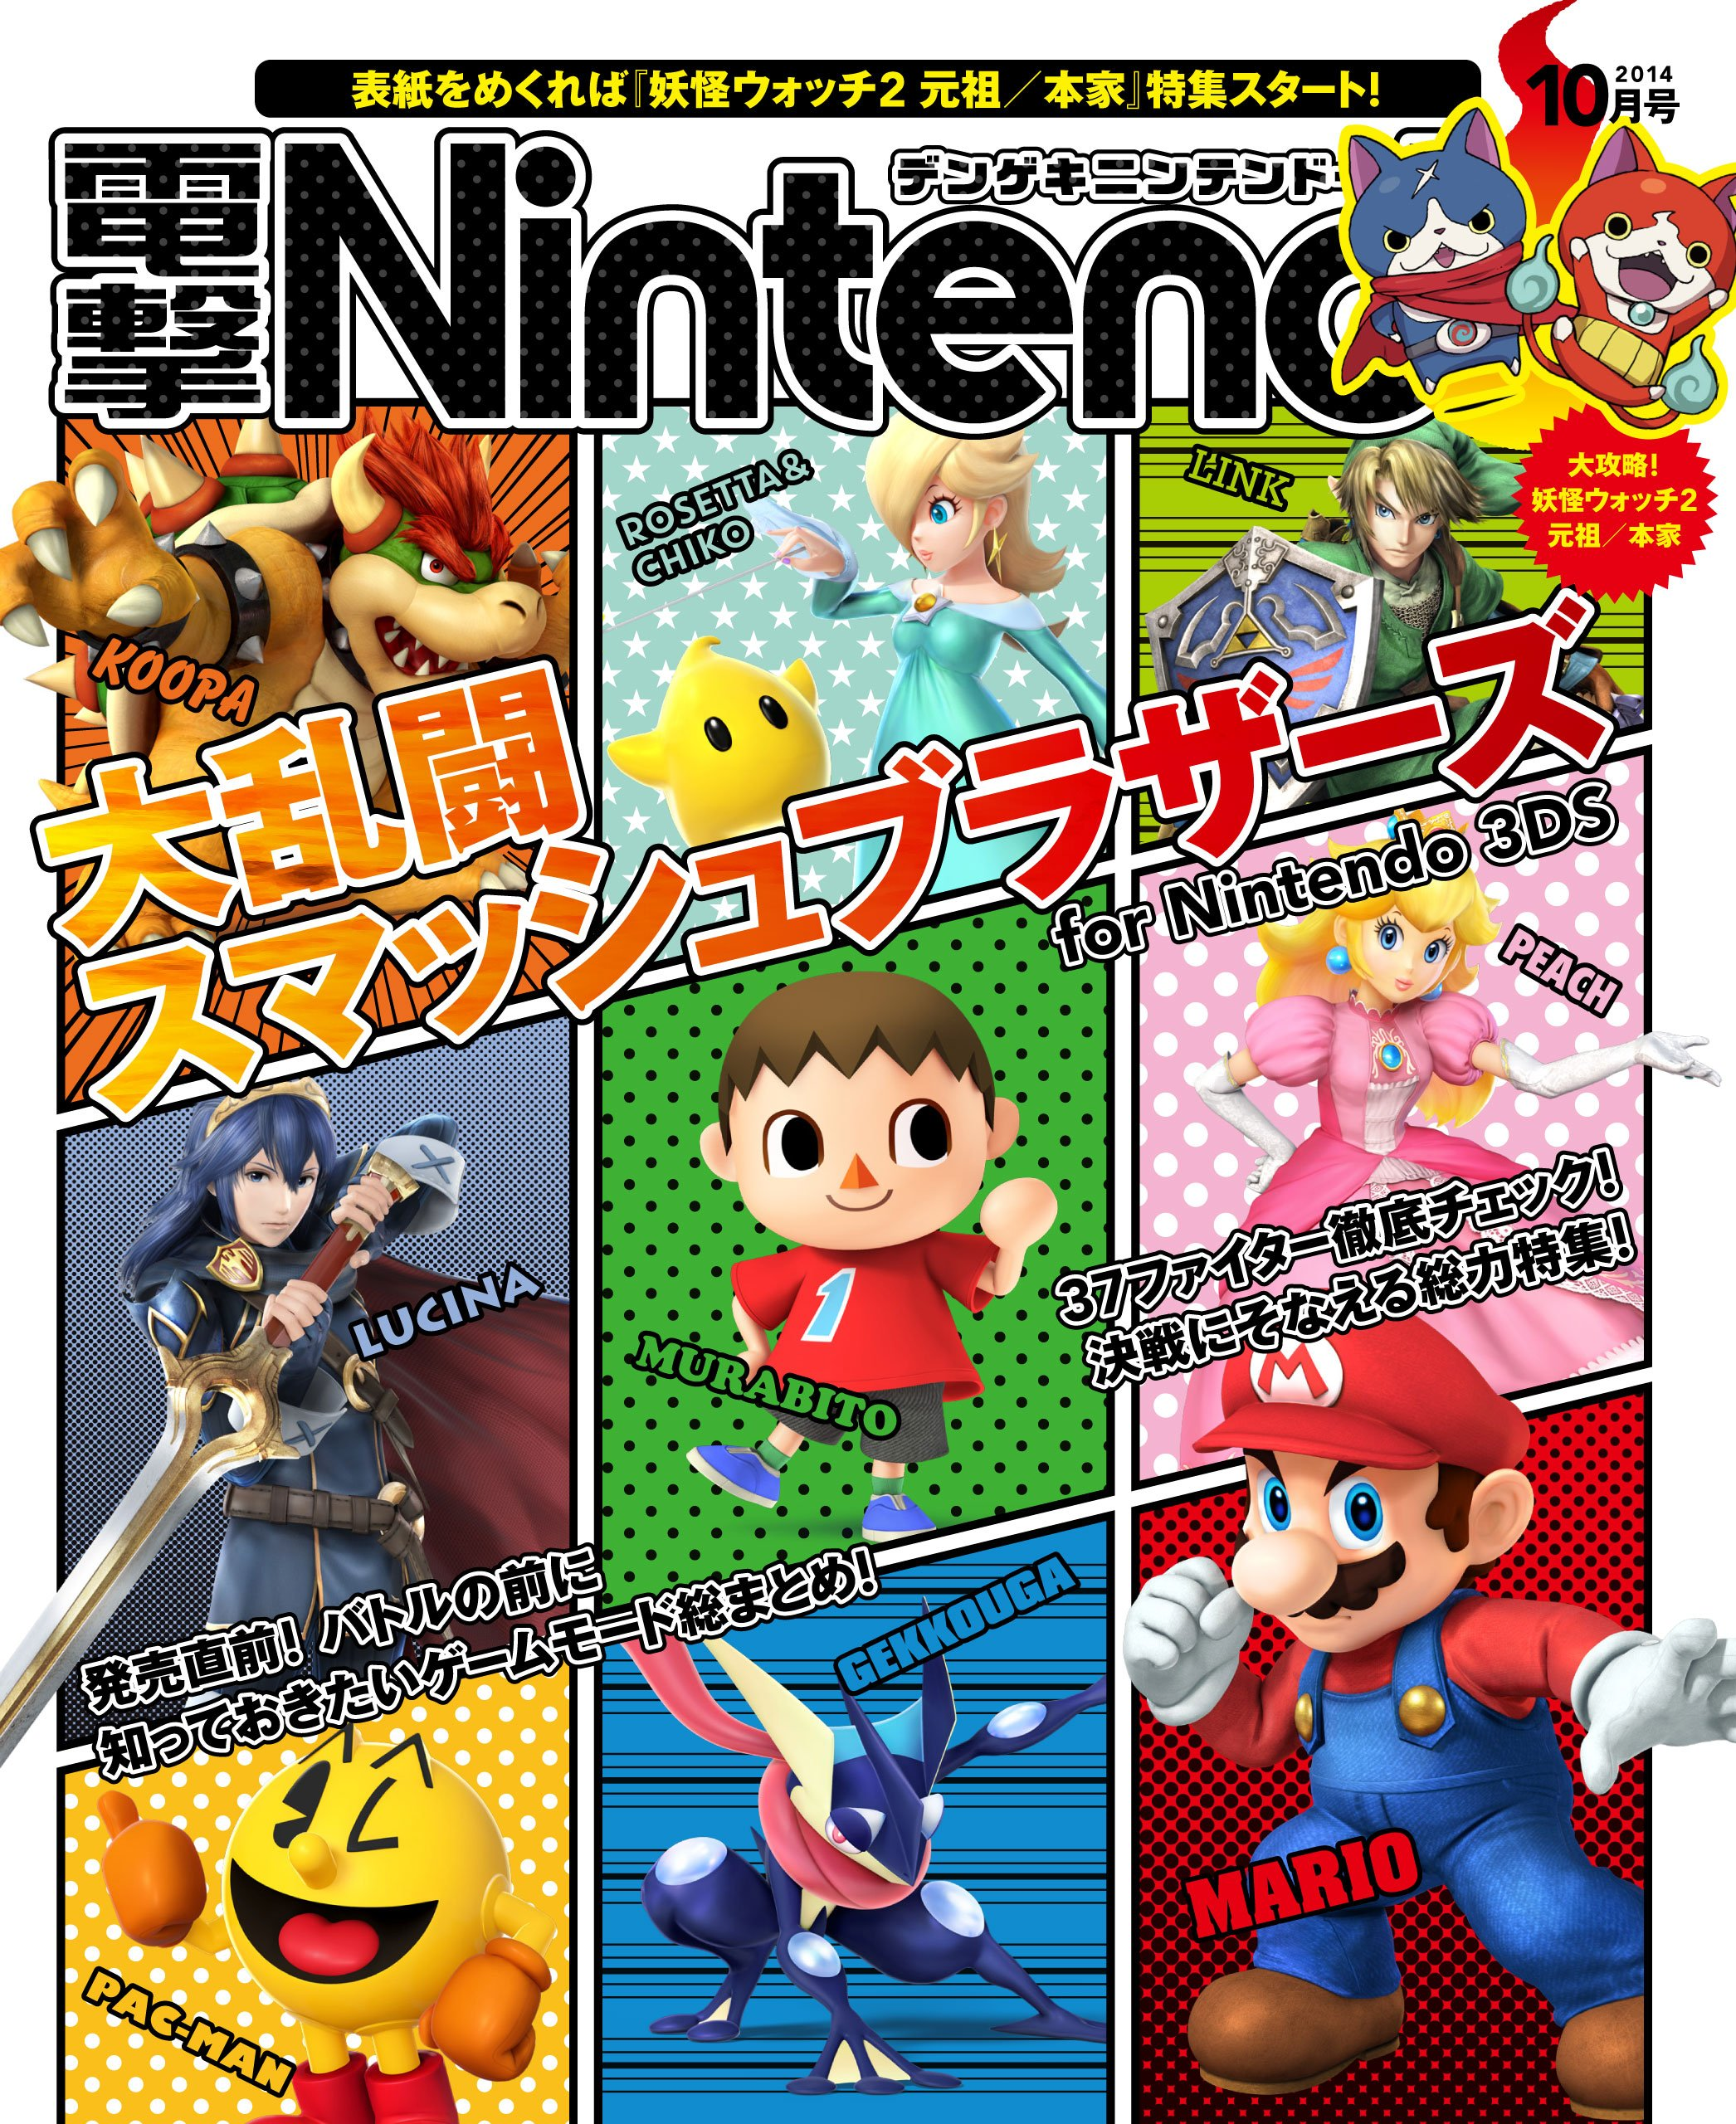 Dengeki Nintendo Issue 017 (October 2014)